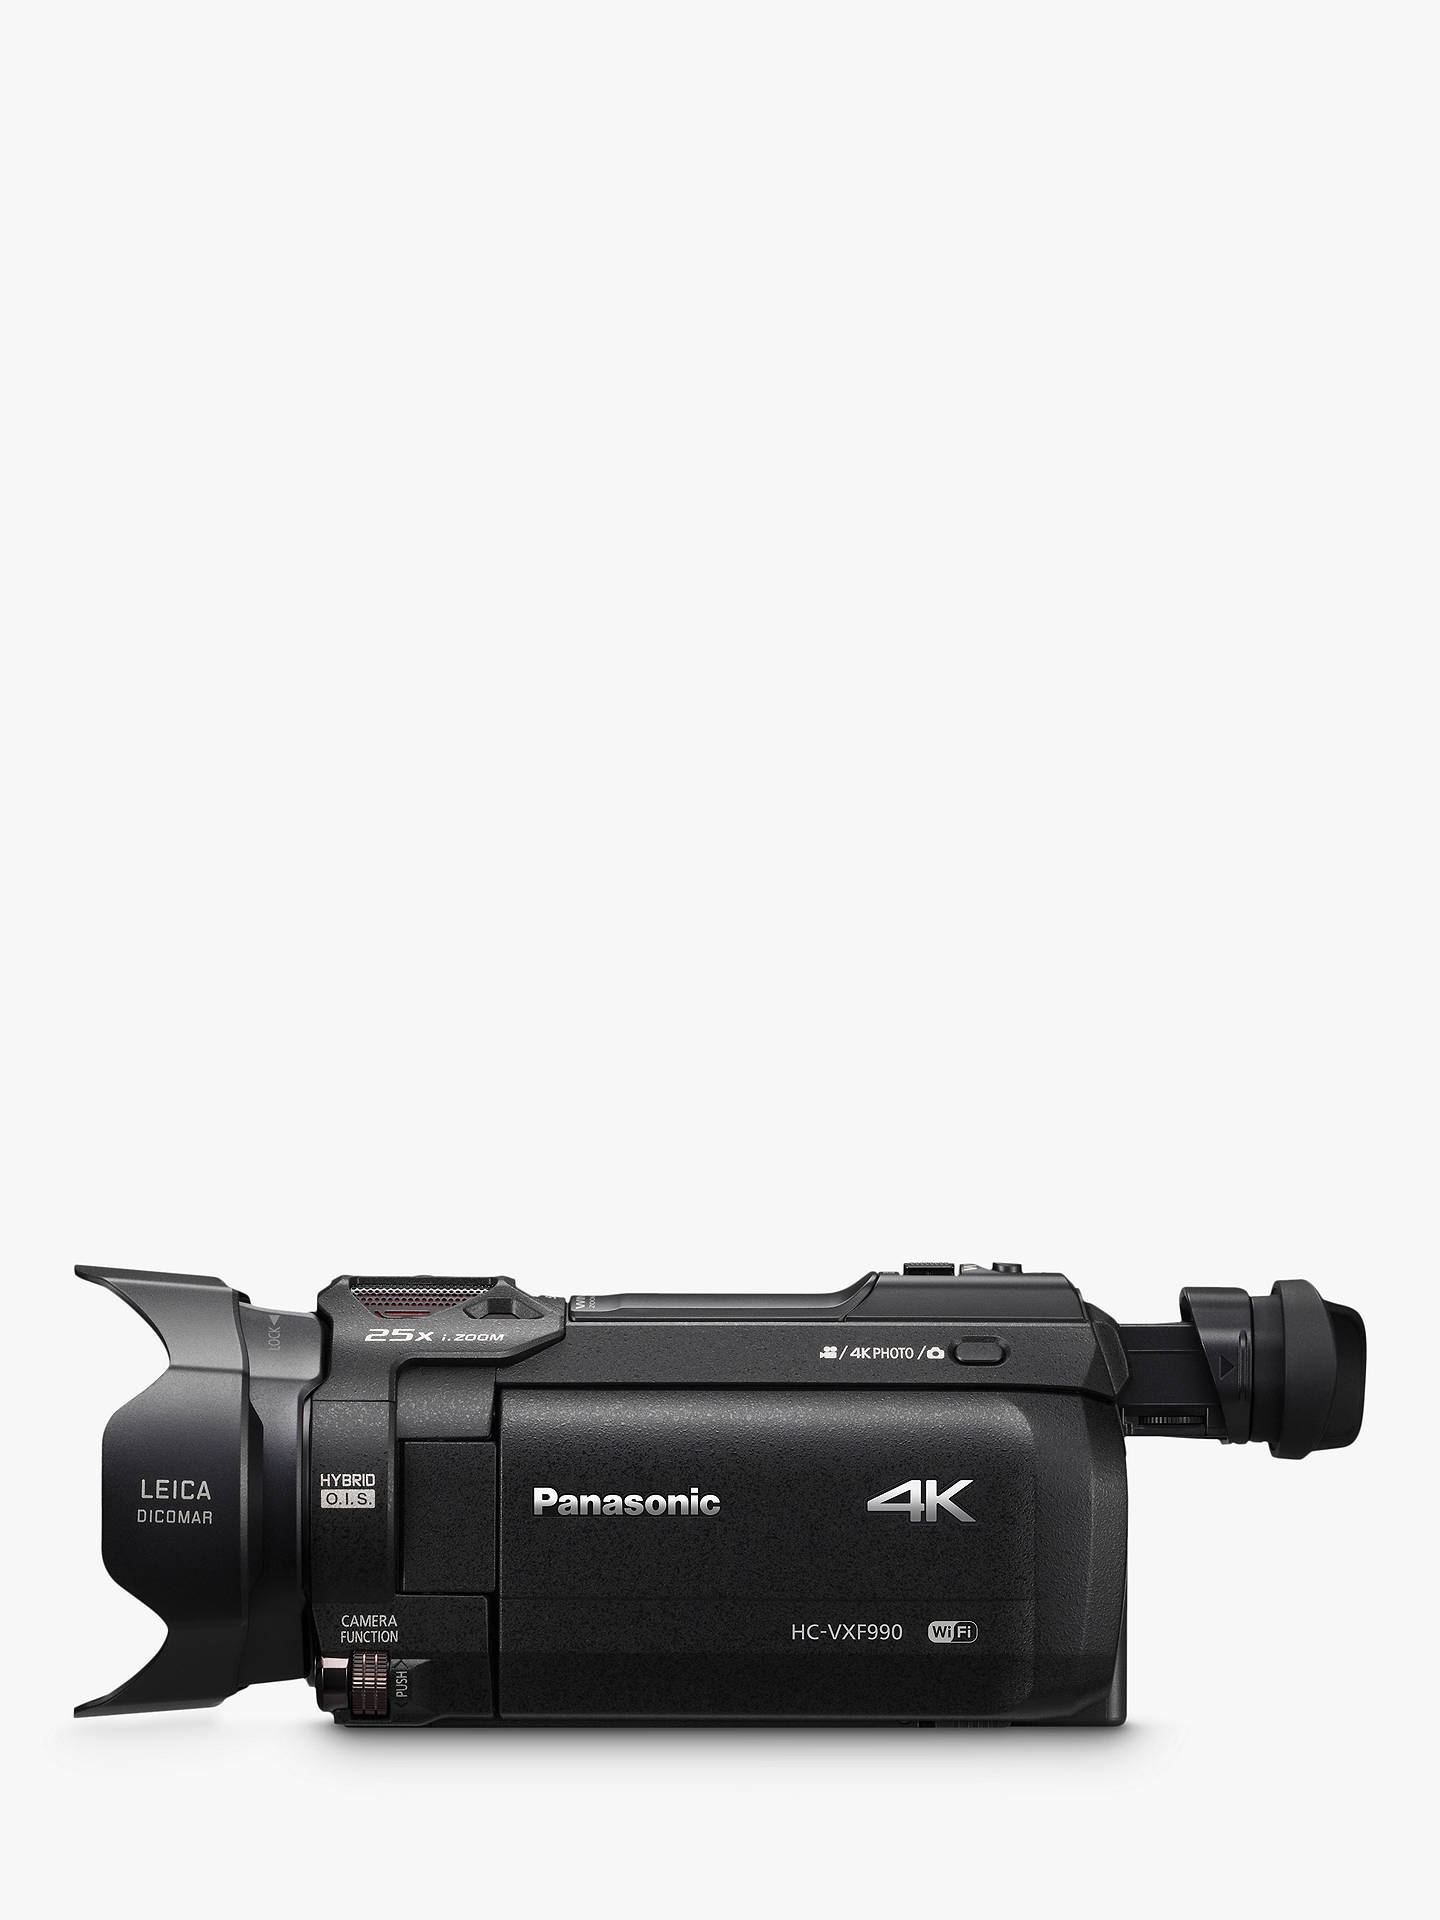 4k Ultra Hd Camcorder Hc Vxf990ebk K Panasonic Vx985 Buypanasonic 829mp 20x